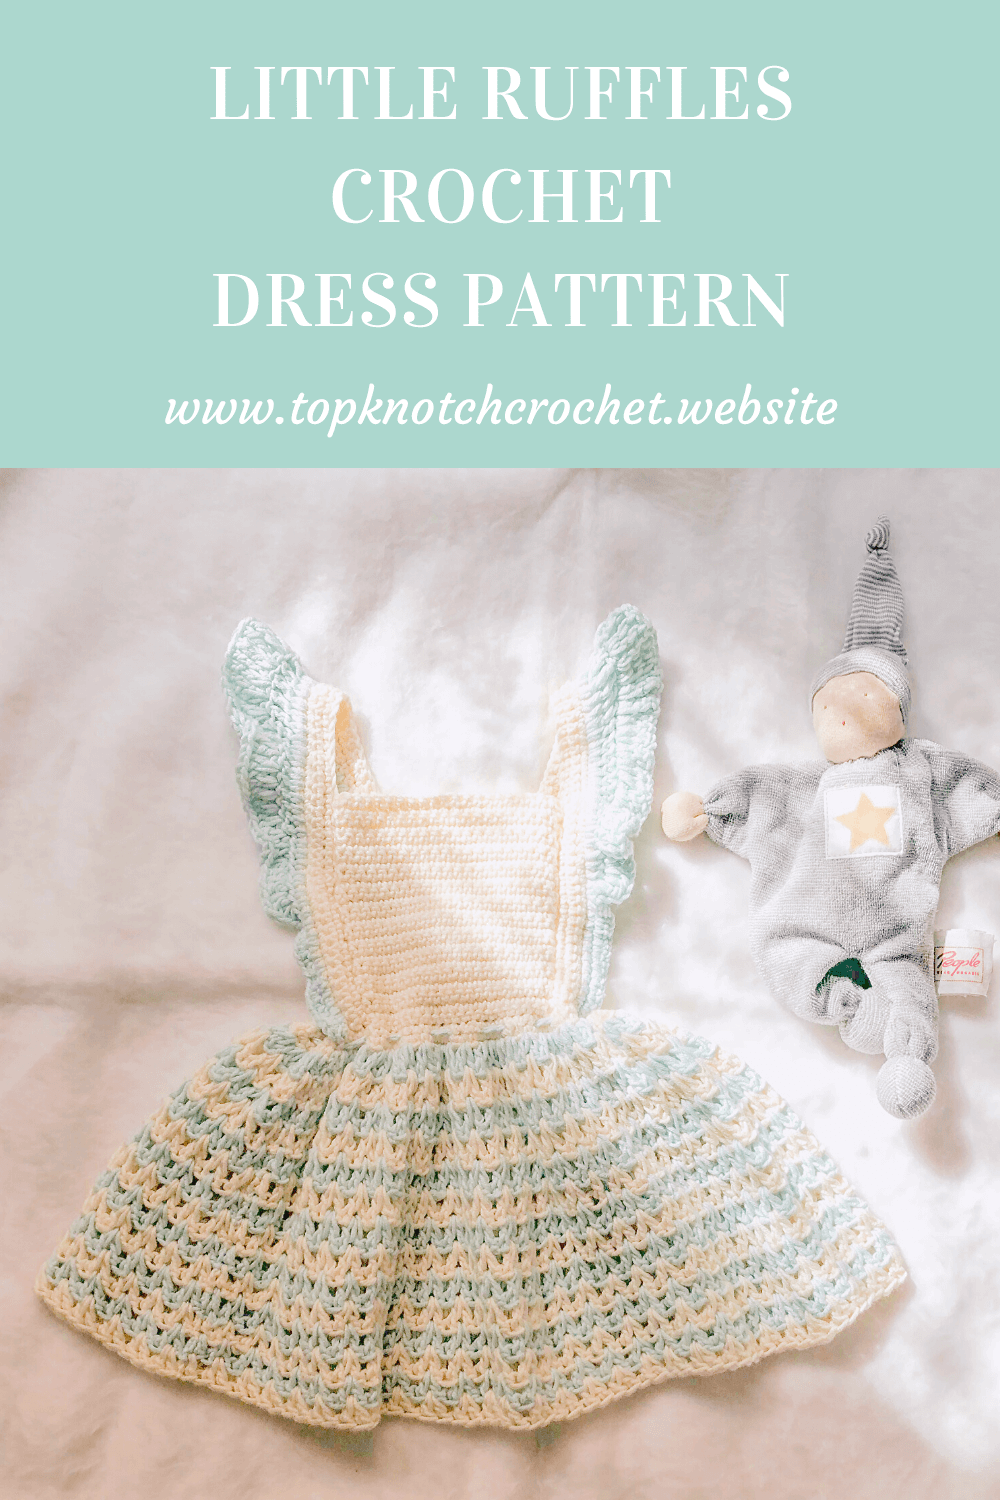 Crochet Dress pattern with little Ruffles